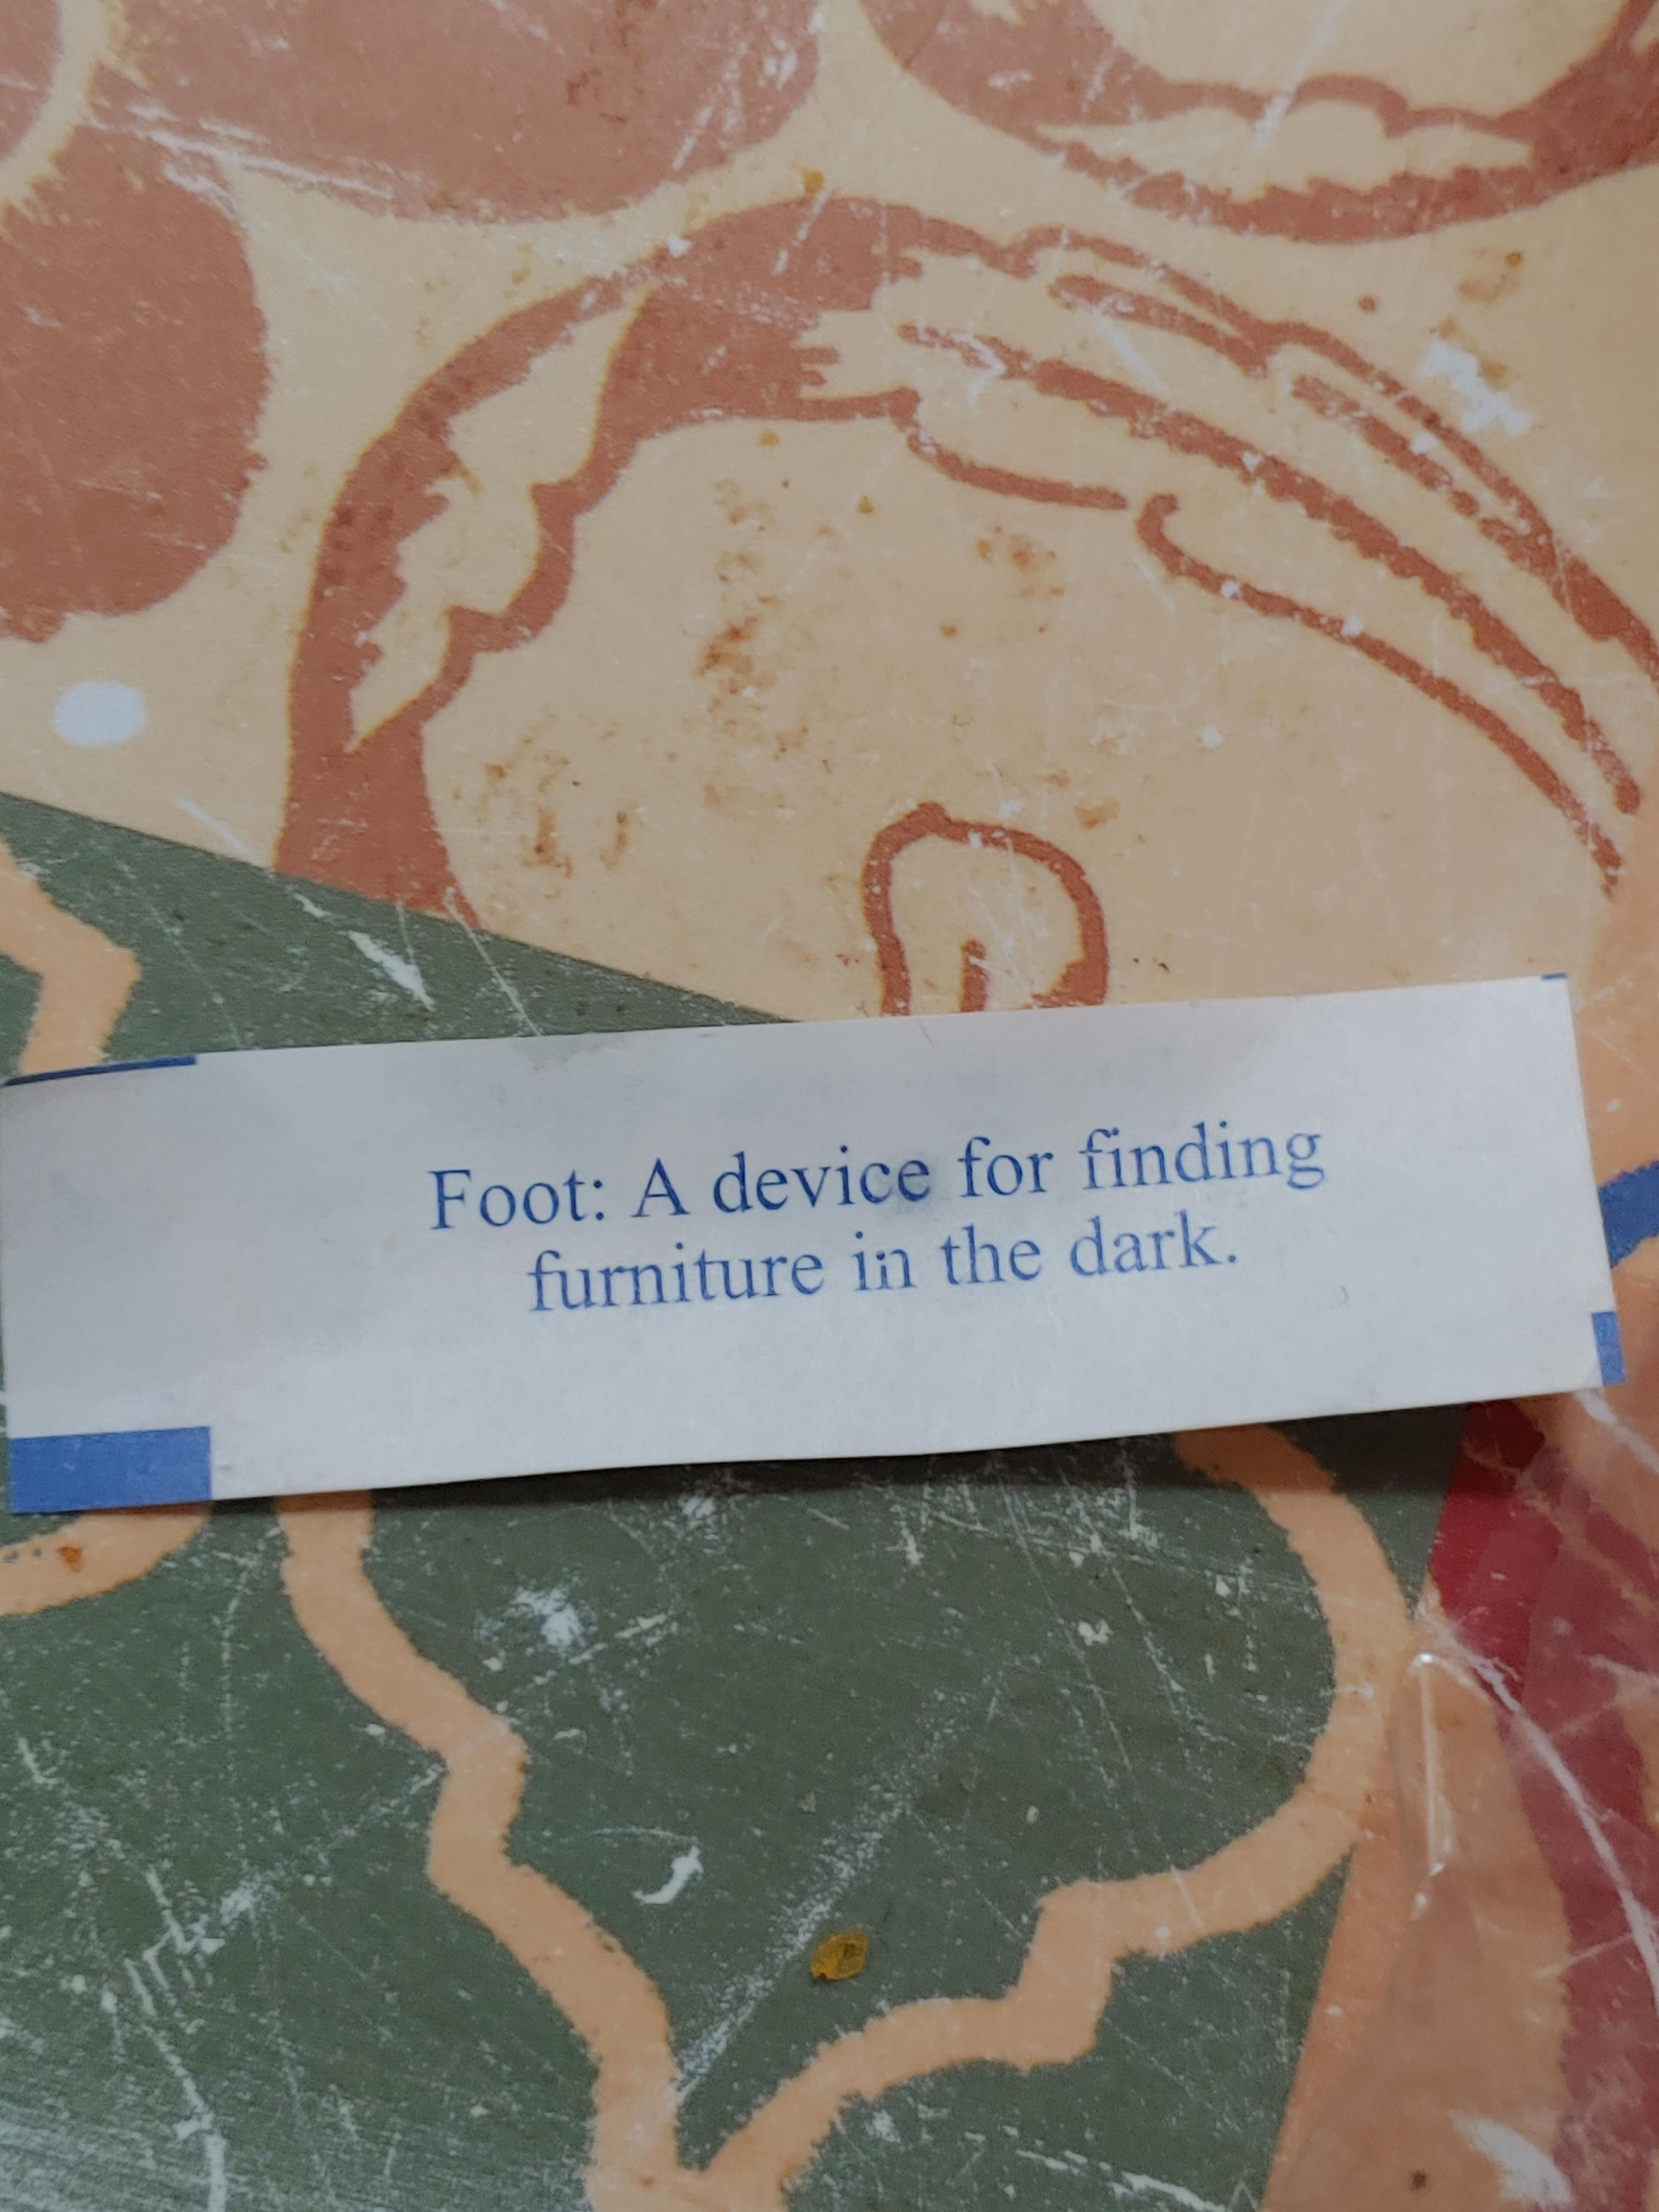 Today I got a kick out of my fortune cookie.